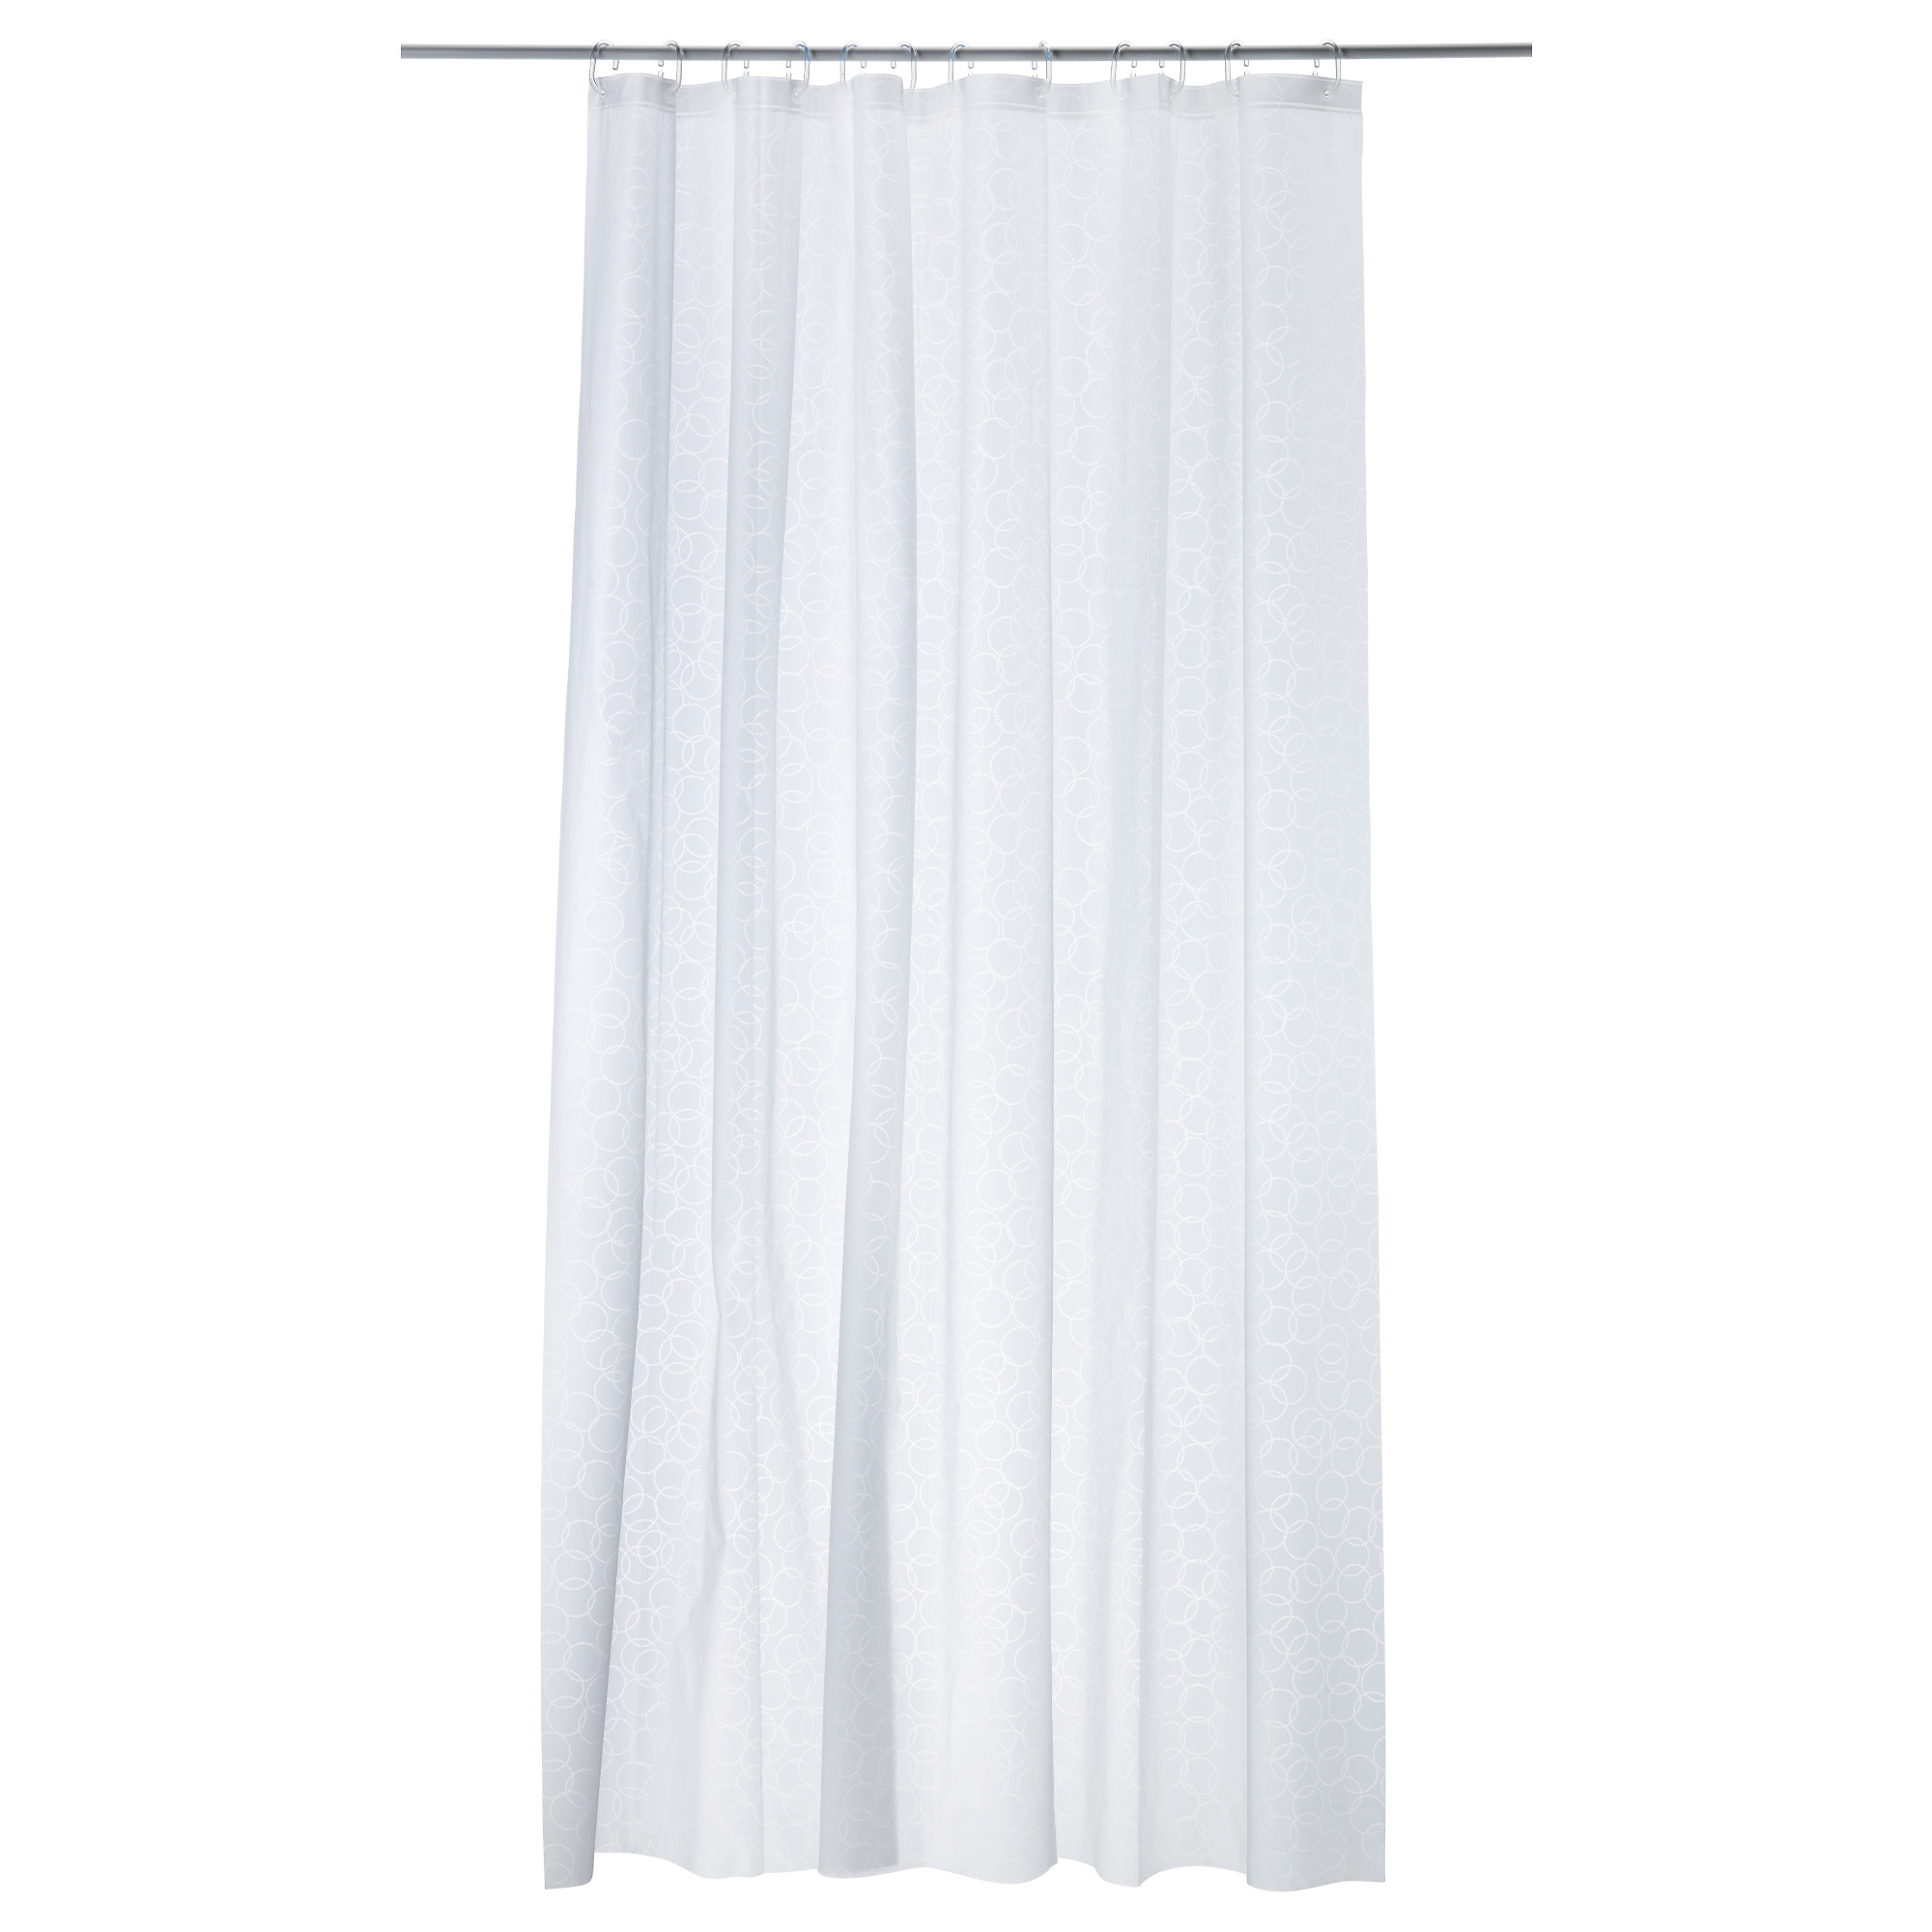 Ikea Shower Curtain for Best Your Bathroom Decoration: Extra Long Shower Curtain Target | Teal And White Shower Curtain | Ikea Shower Curtain